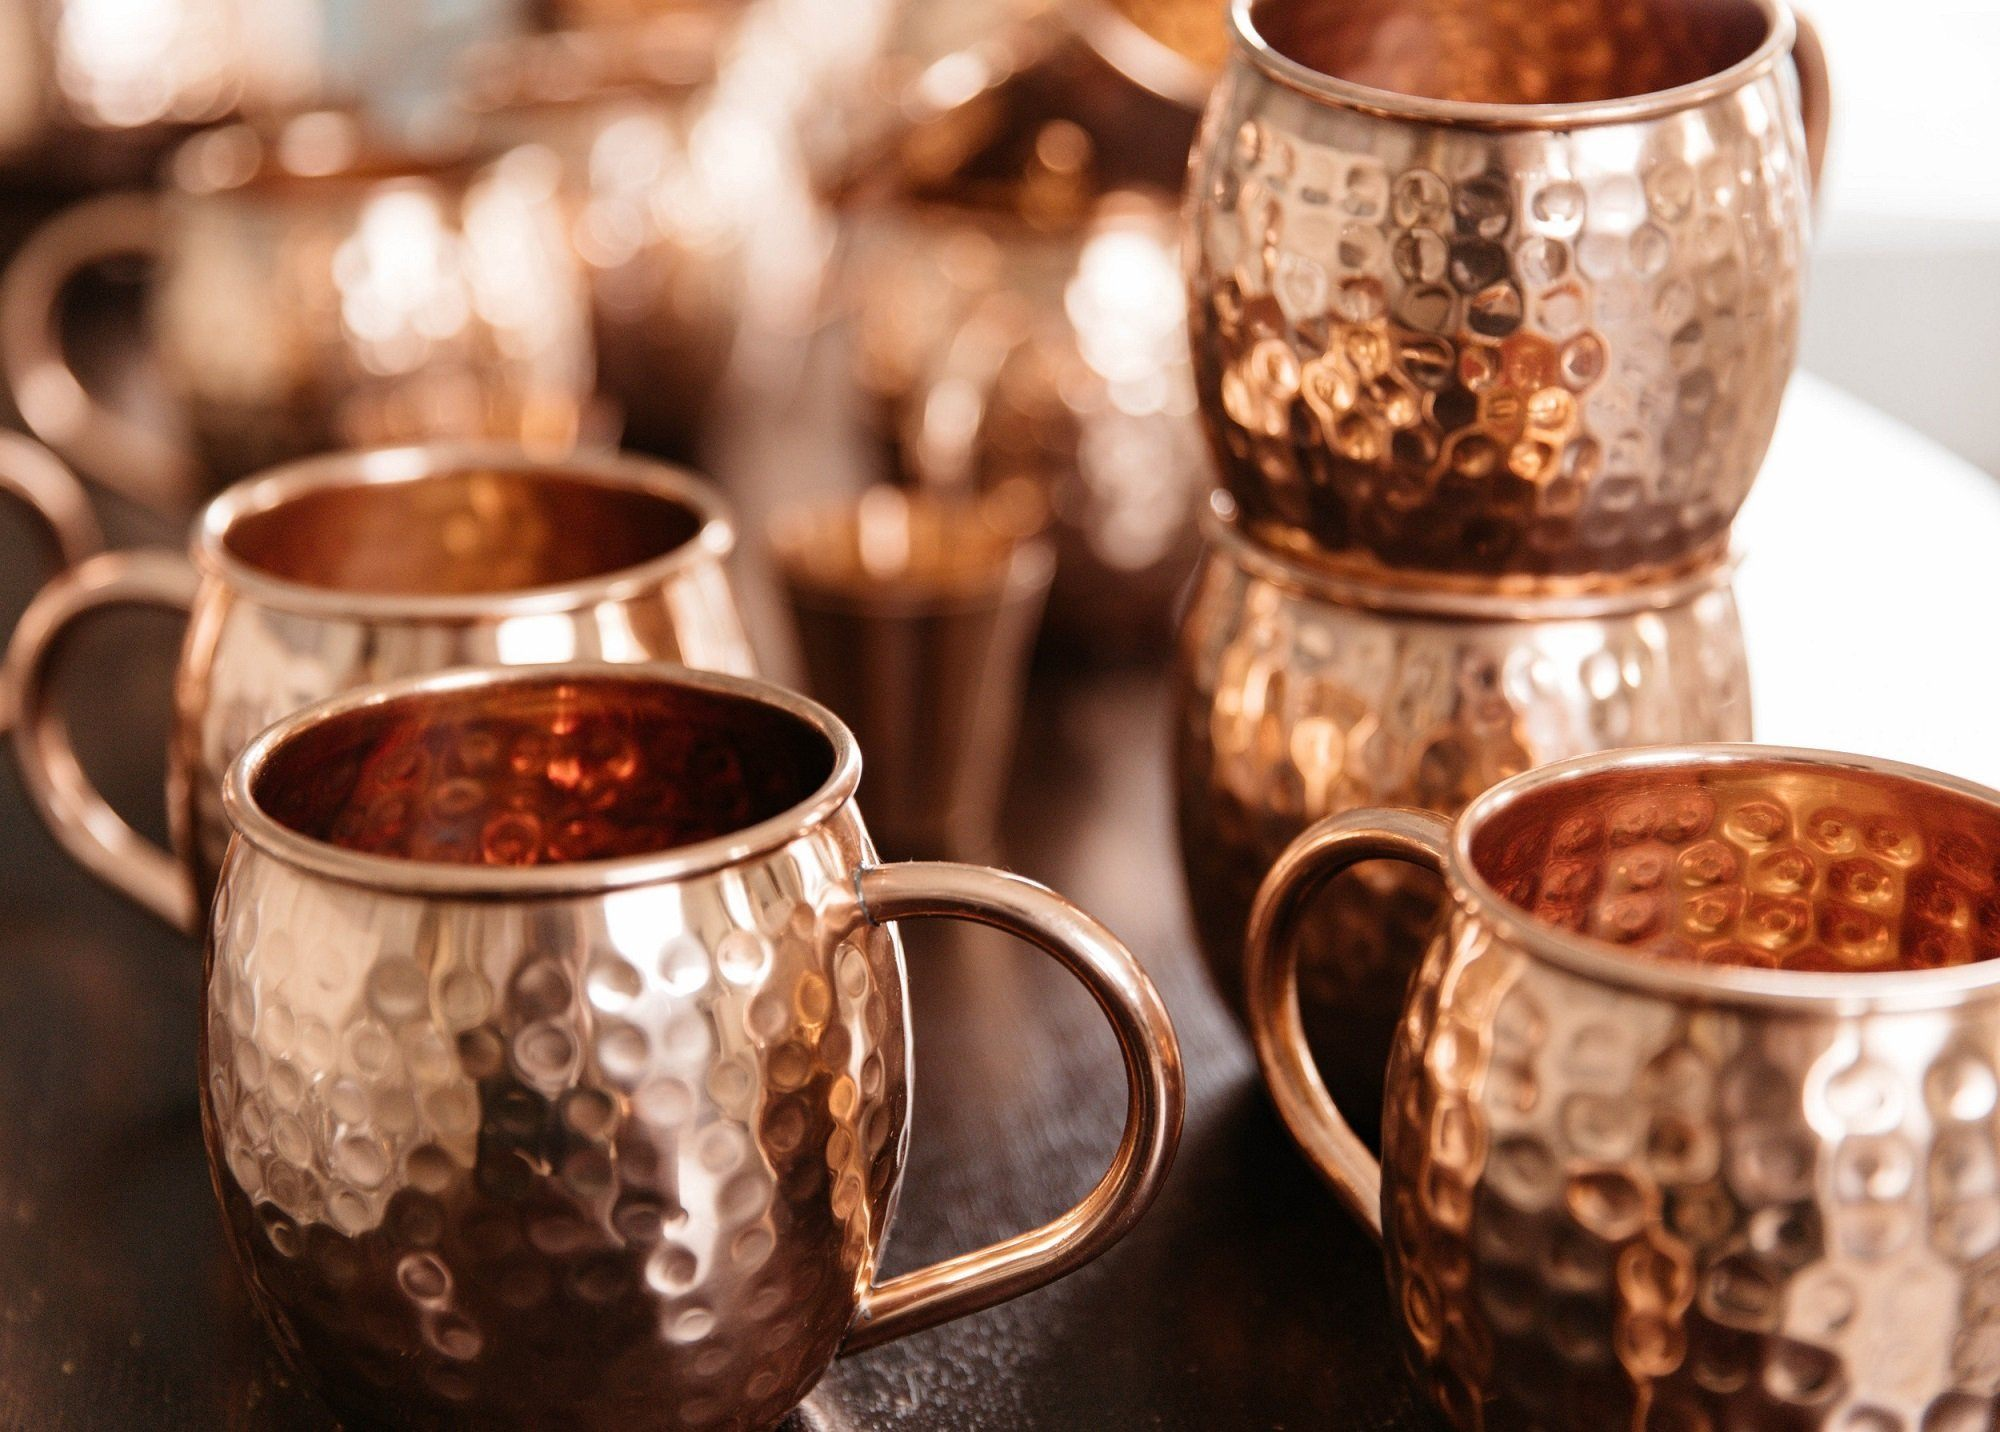 Two Sets of 4 Handcrafted Unlined Moscow Mule Copper Mugs in Gift Box